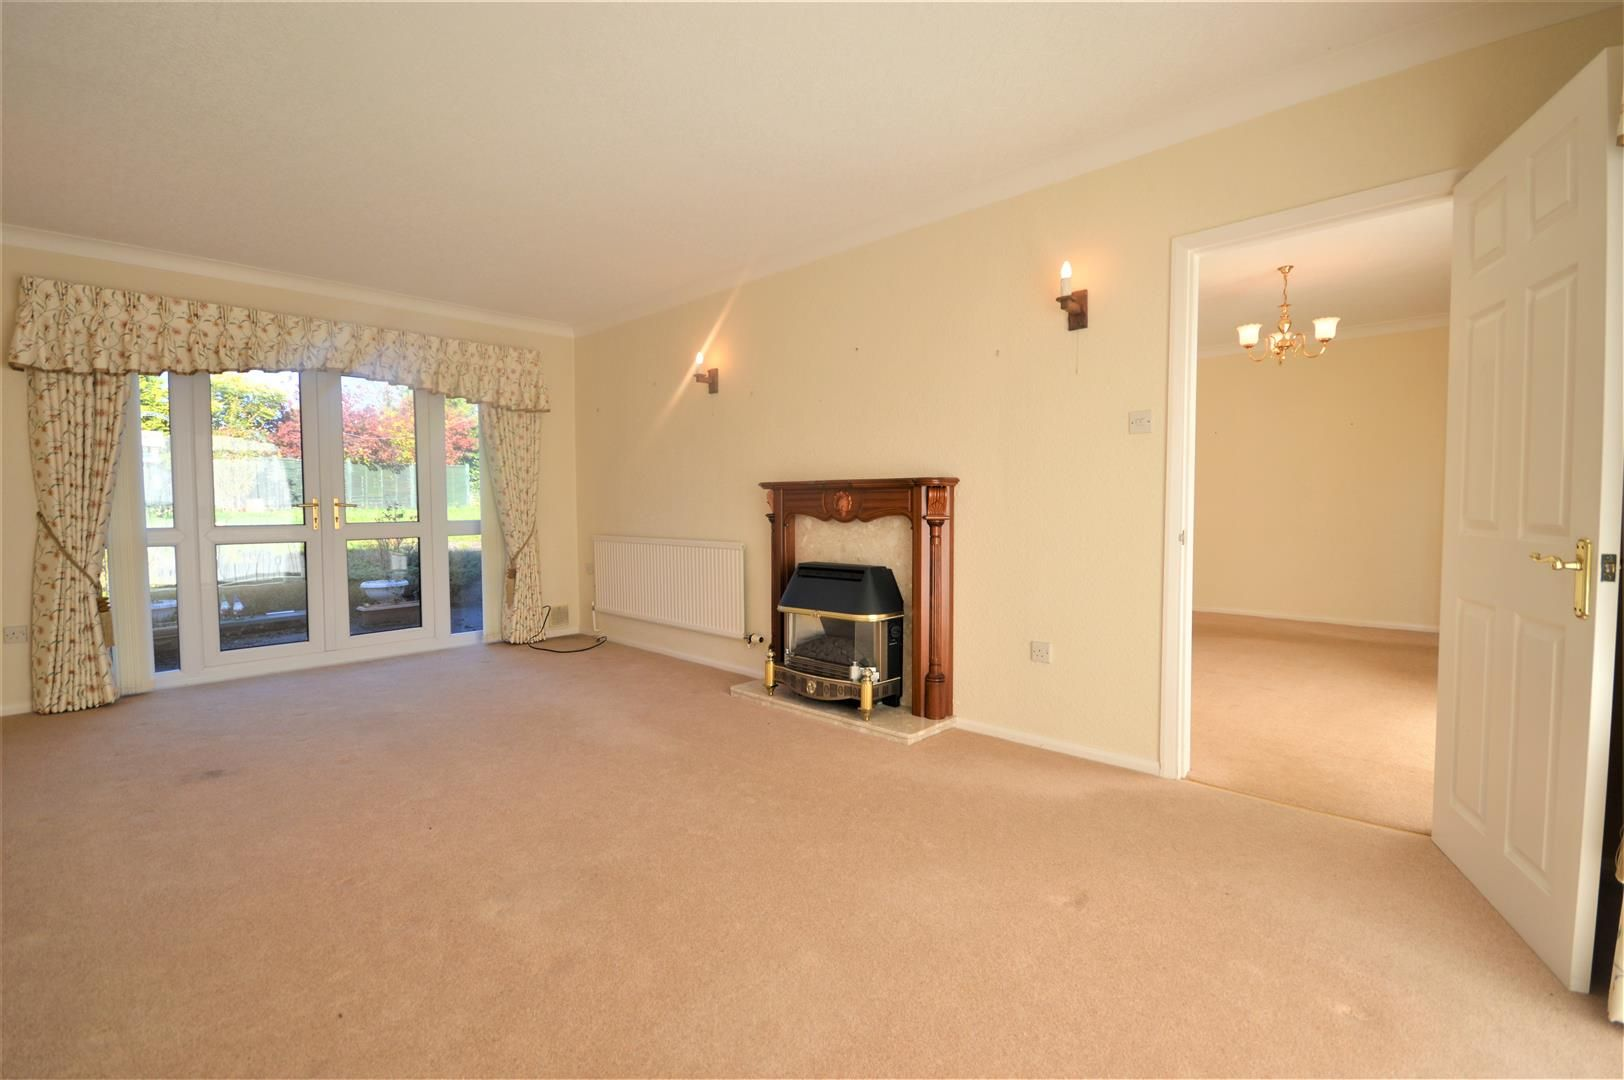 3 bed detached-bungalow for sale in Leominster 2